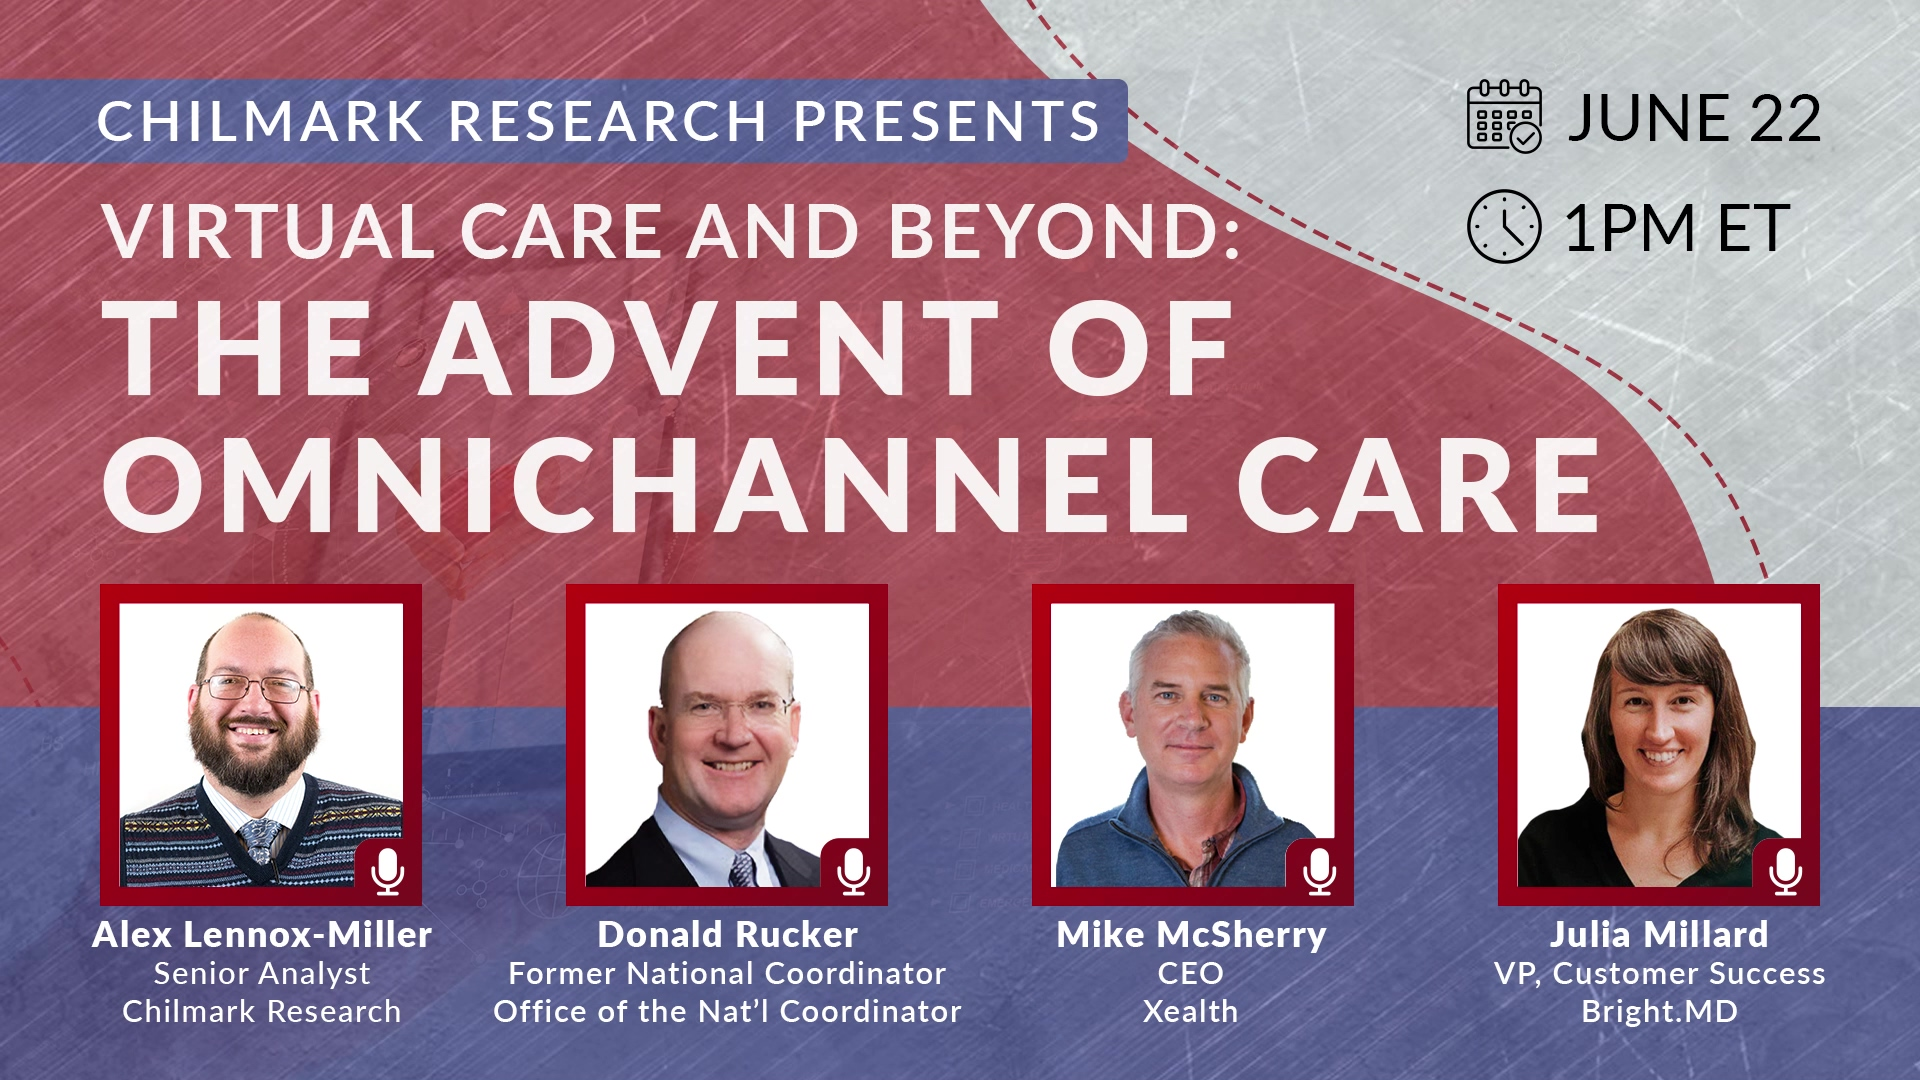 The Advent of Omnichannel Care promo reel